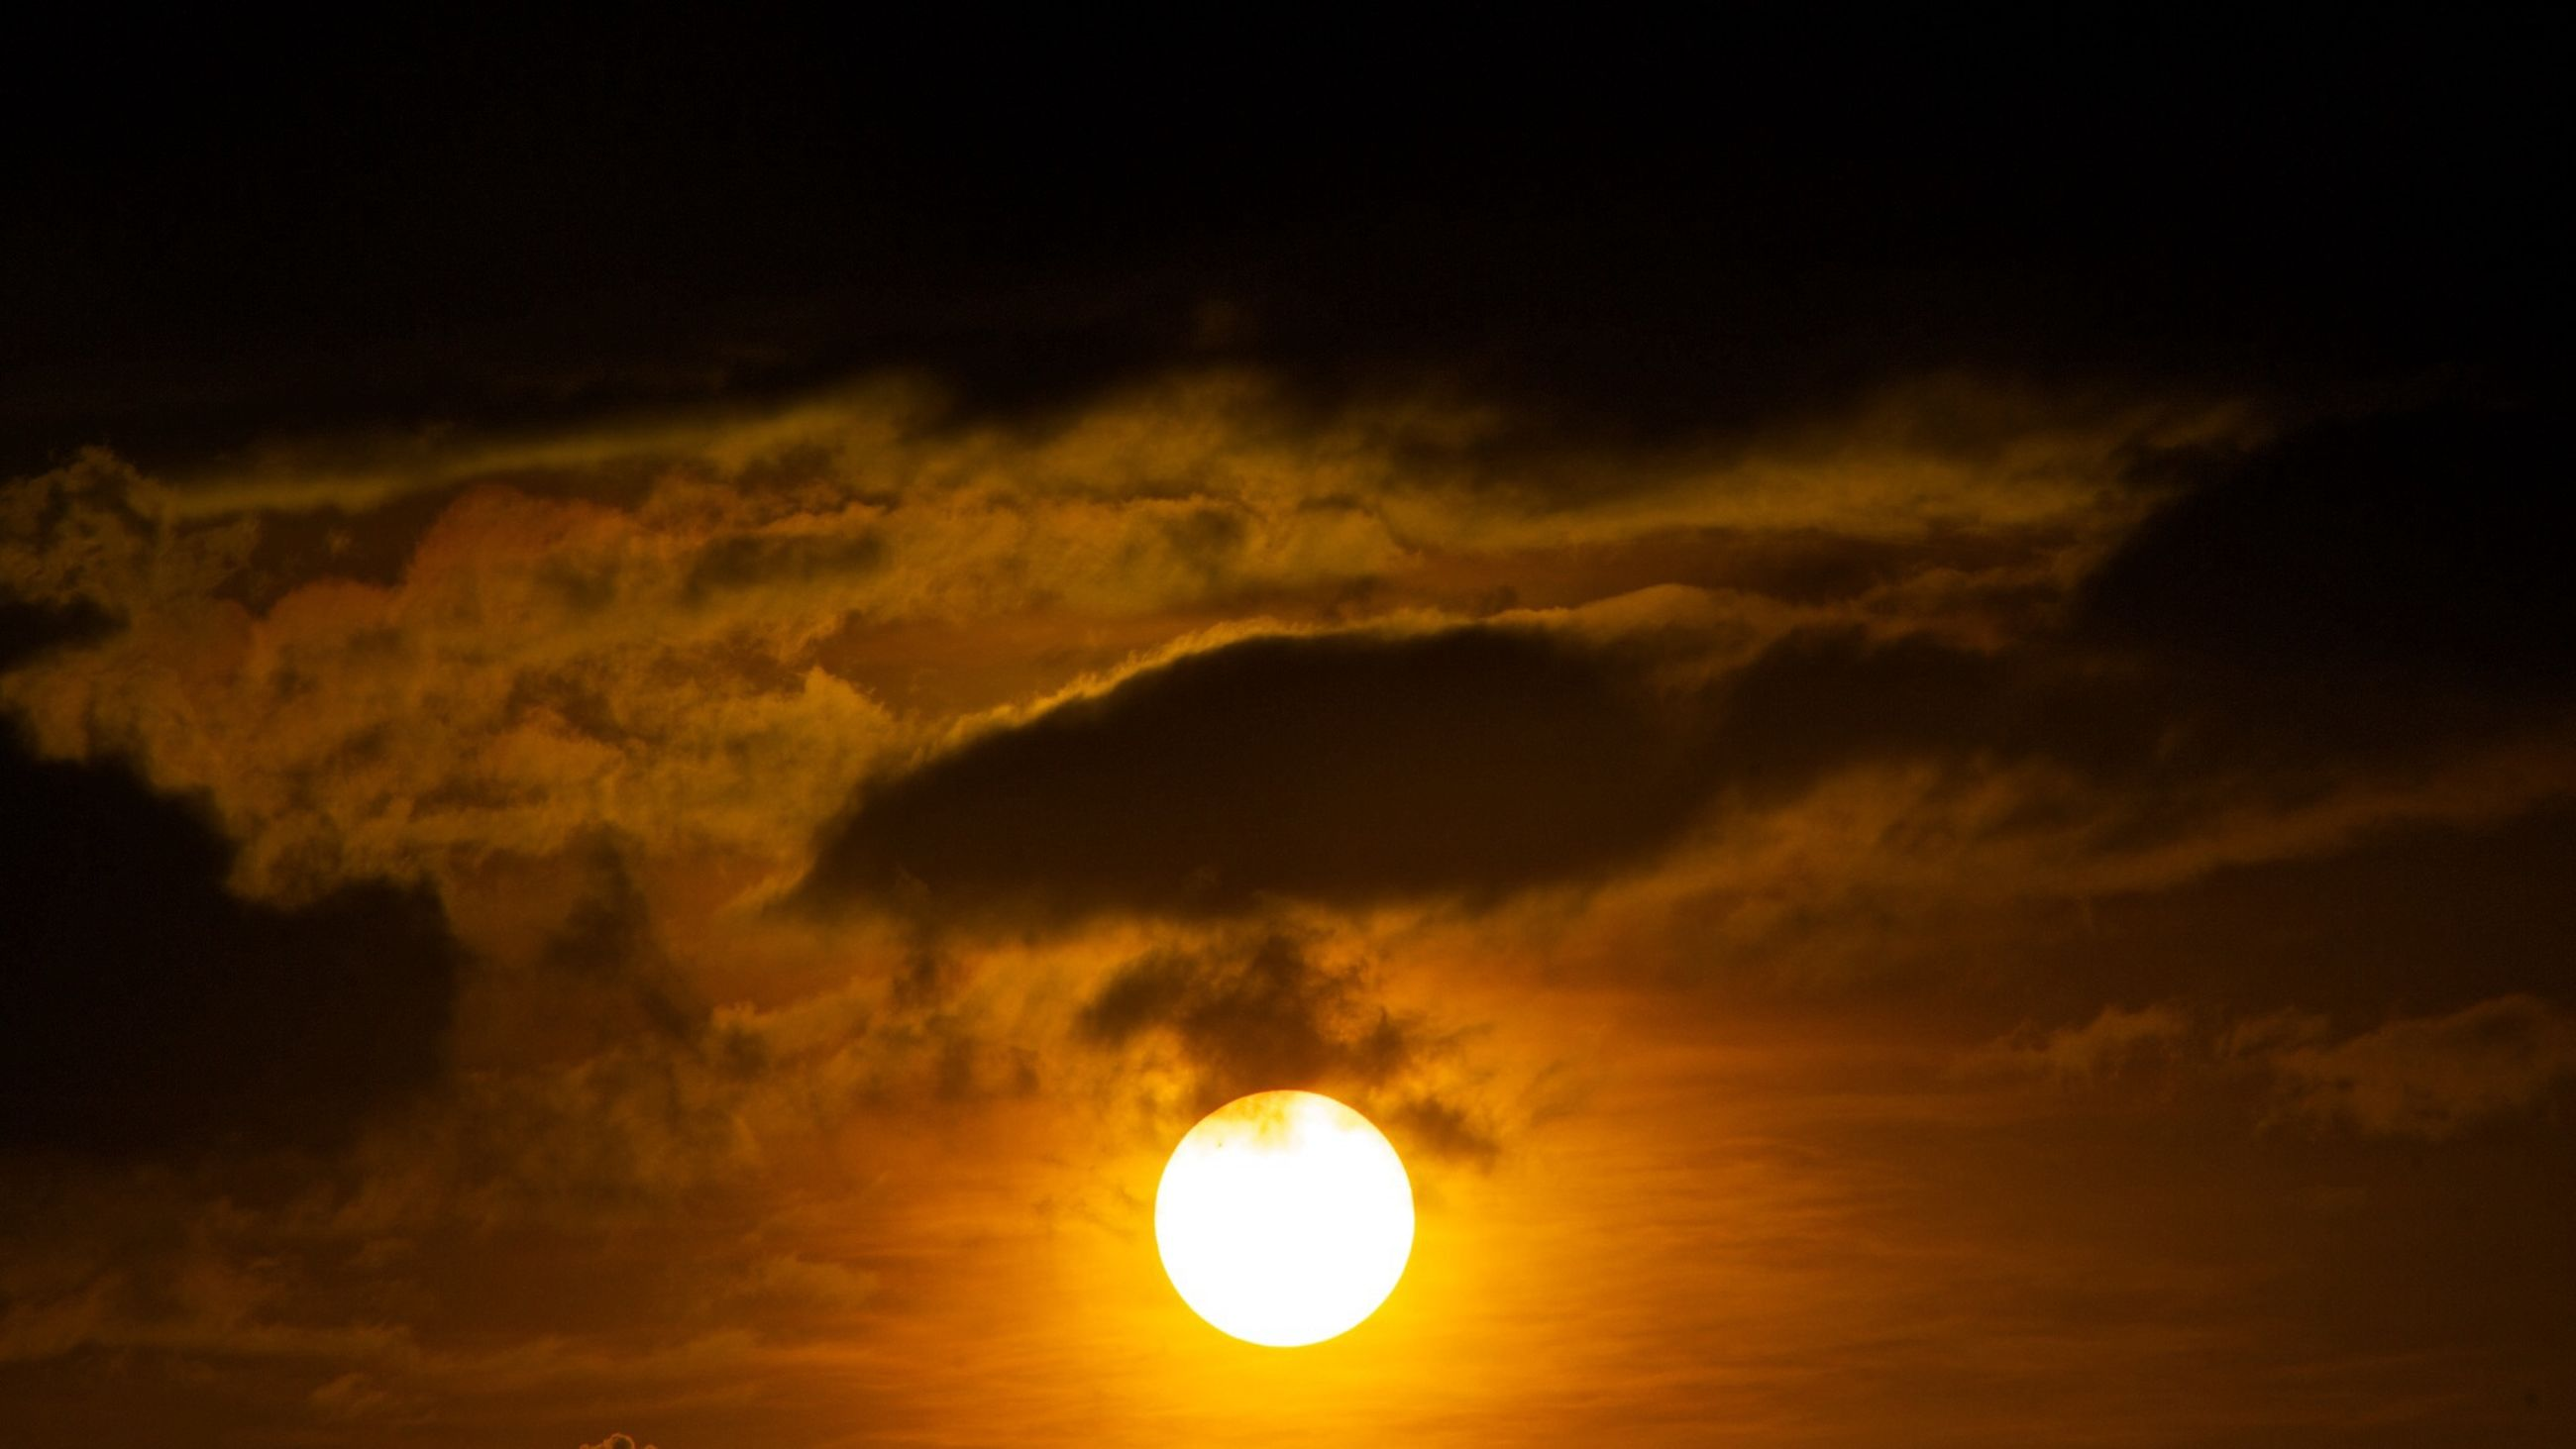 sunset, sun, scenics, beauty in nature, sky, tranquil scene, tranquility, cloud - sky, nature, idyllic, sky only, orange color, majestic, low angle view, sunlight, dramatic sky, cloud, cloudy, atmospheric mood, cloudscape